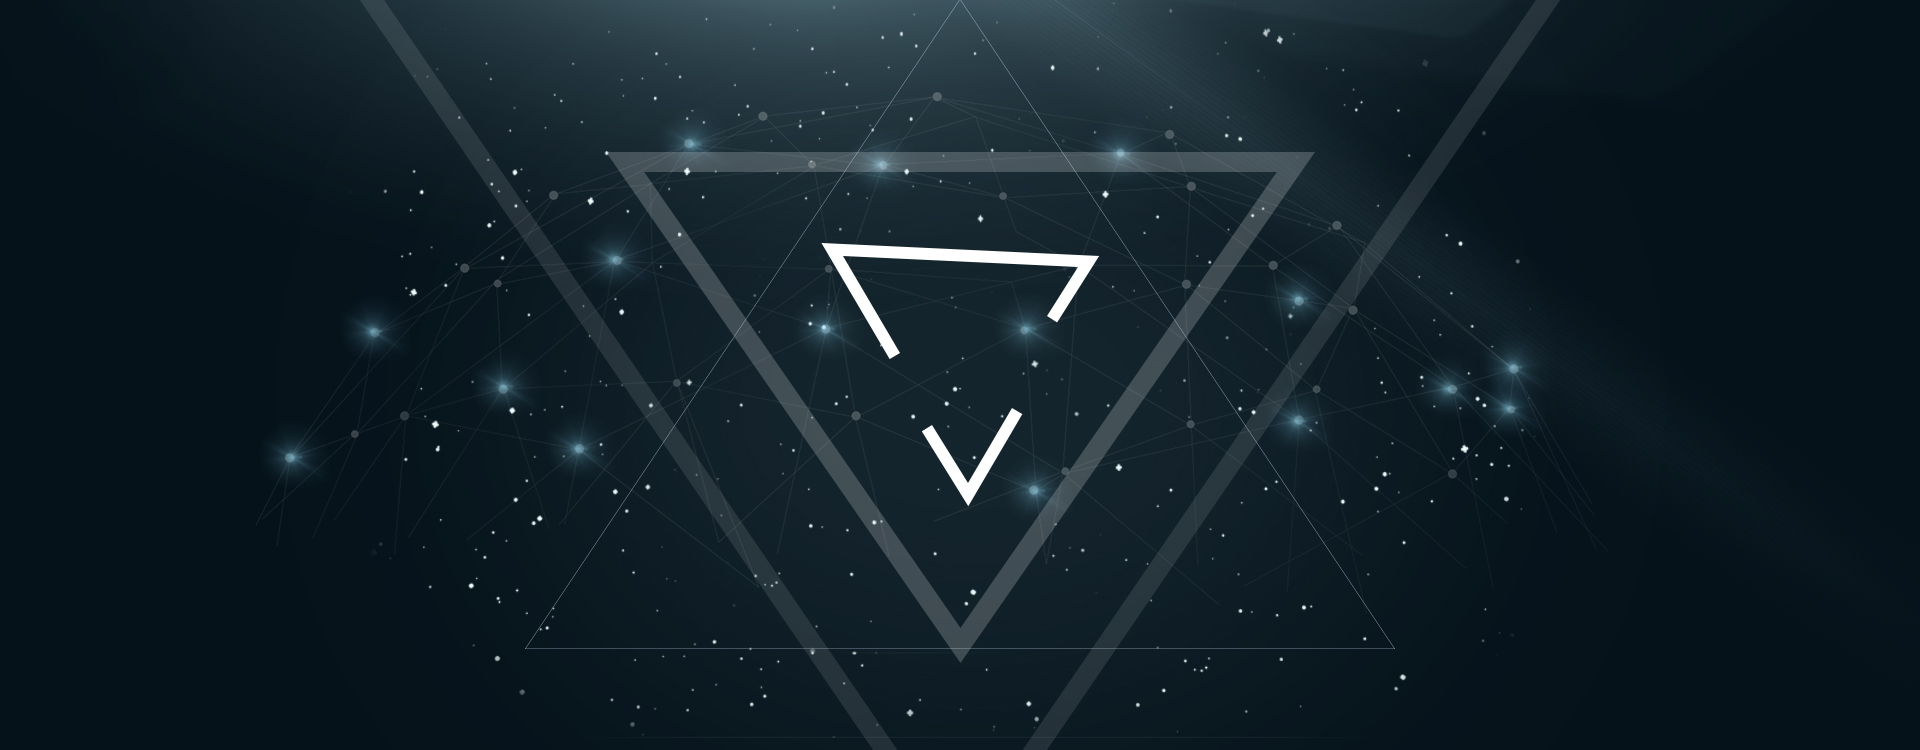 Cute Blue Hearts Wallpaper Astral Geometry Background Triangle Poster Banner Flat